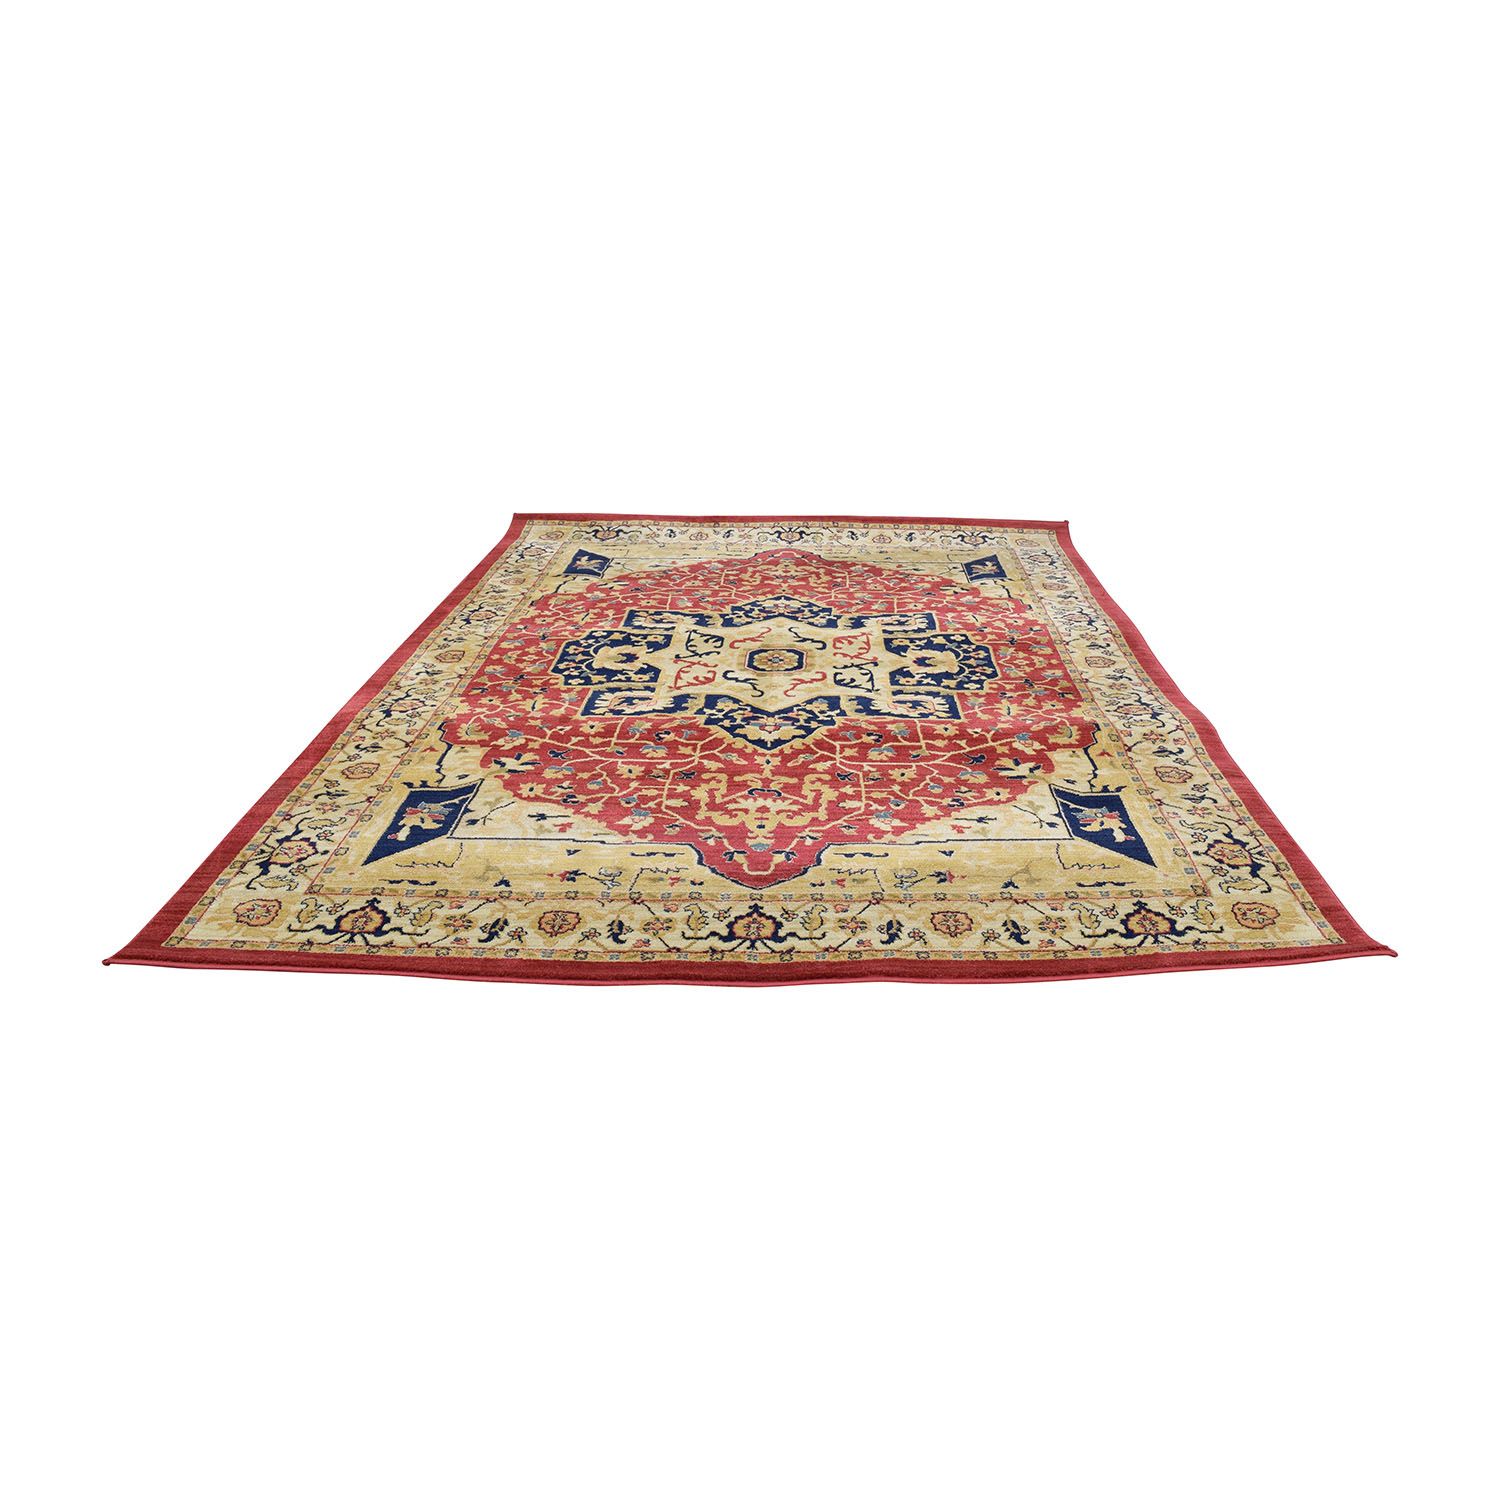 50 Off Safavieh Safavieh Austin Red Beige And Blue Area Rug Decor